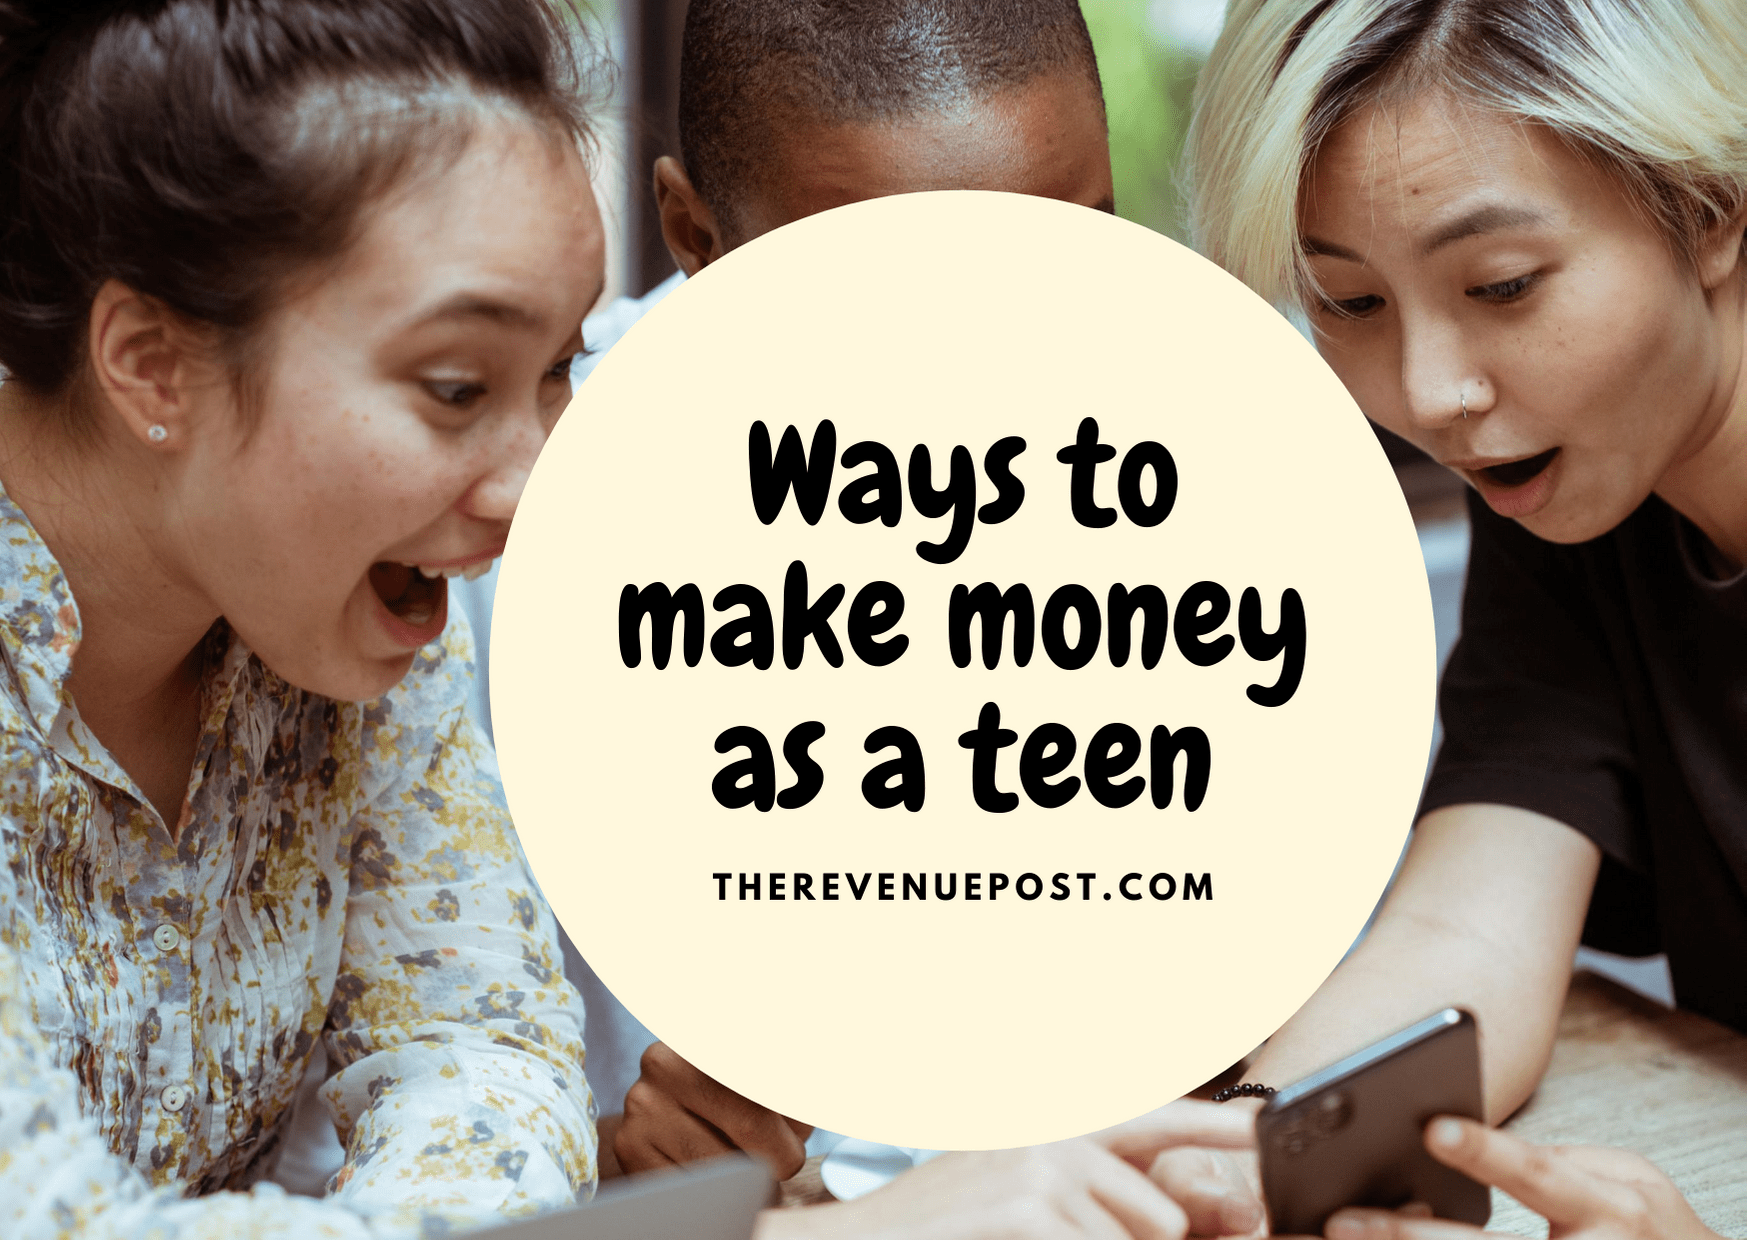 Ways to make money as a teen